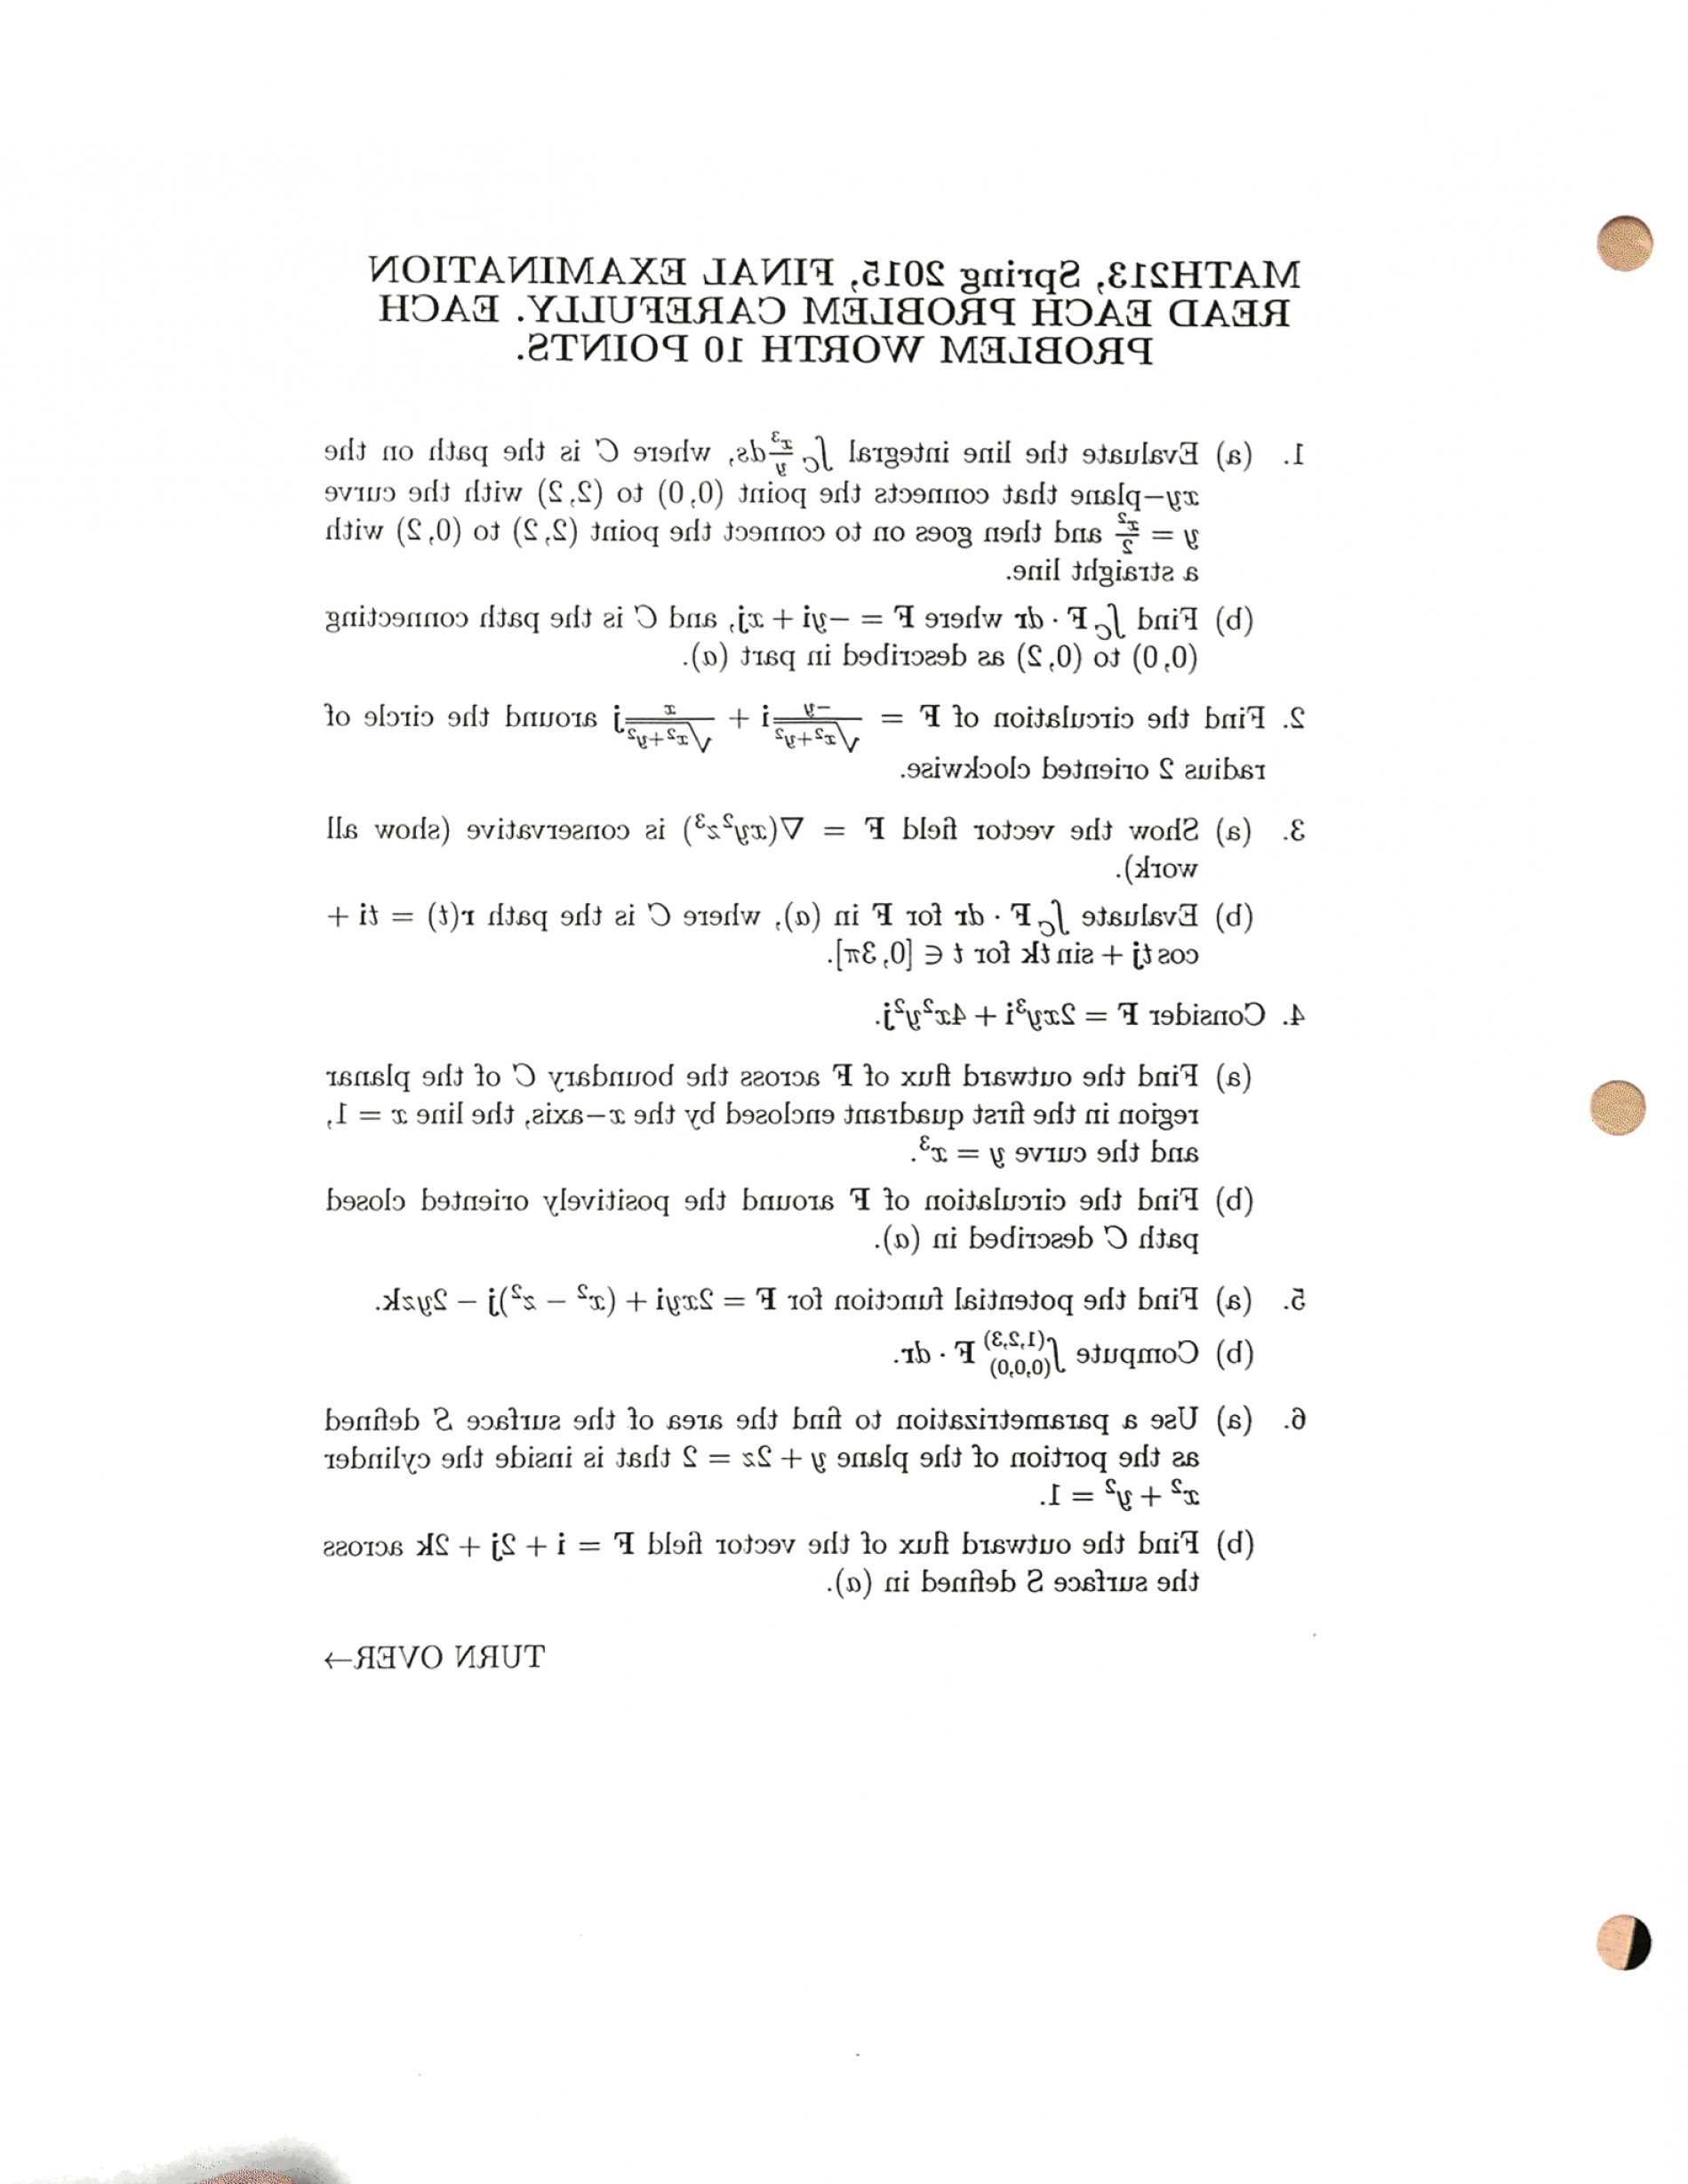 Across A Field A Vector C Curve Of Flux: Evaluate Line Integral Integralc X Y Ds C Path Xy Plane Connects Point Curve Y X Q